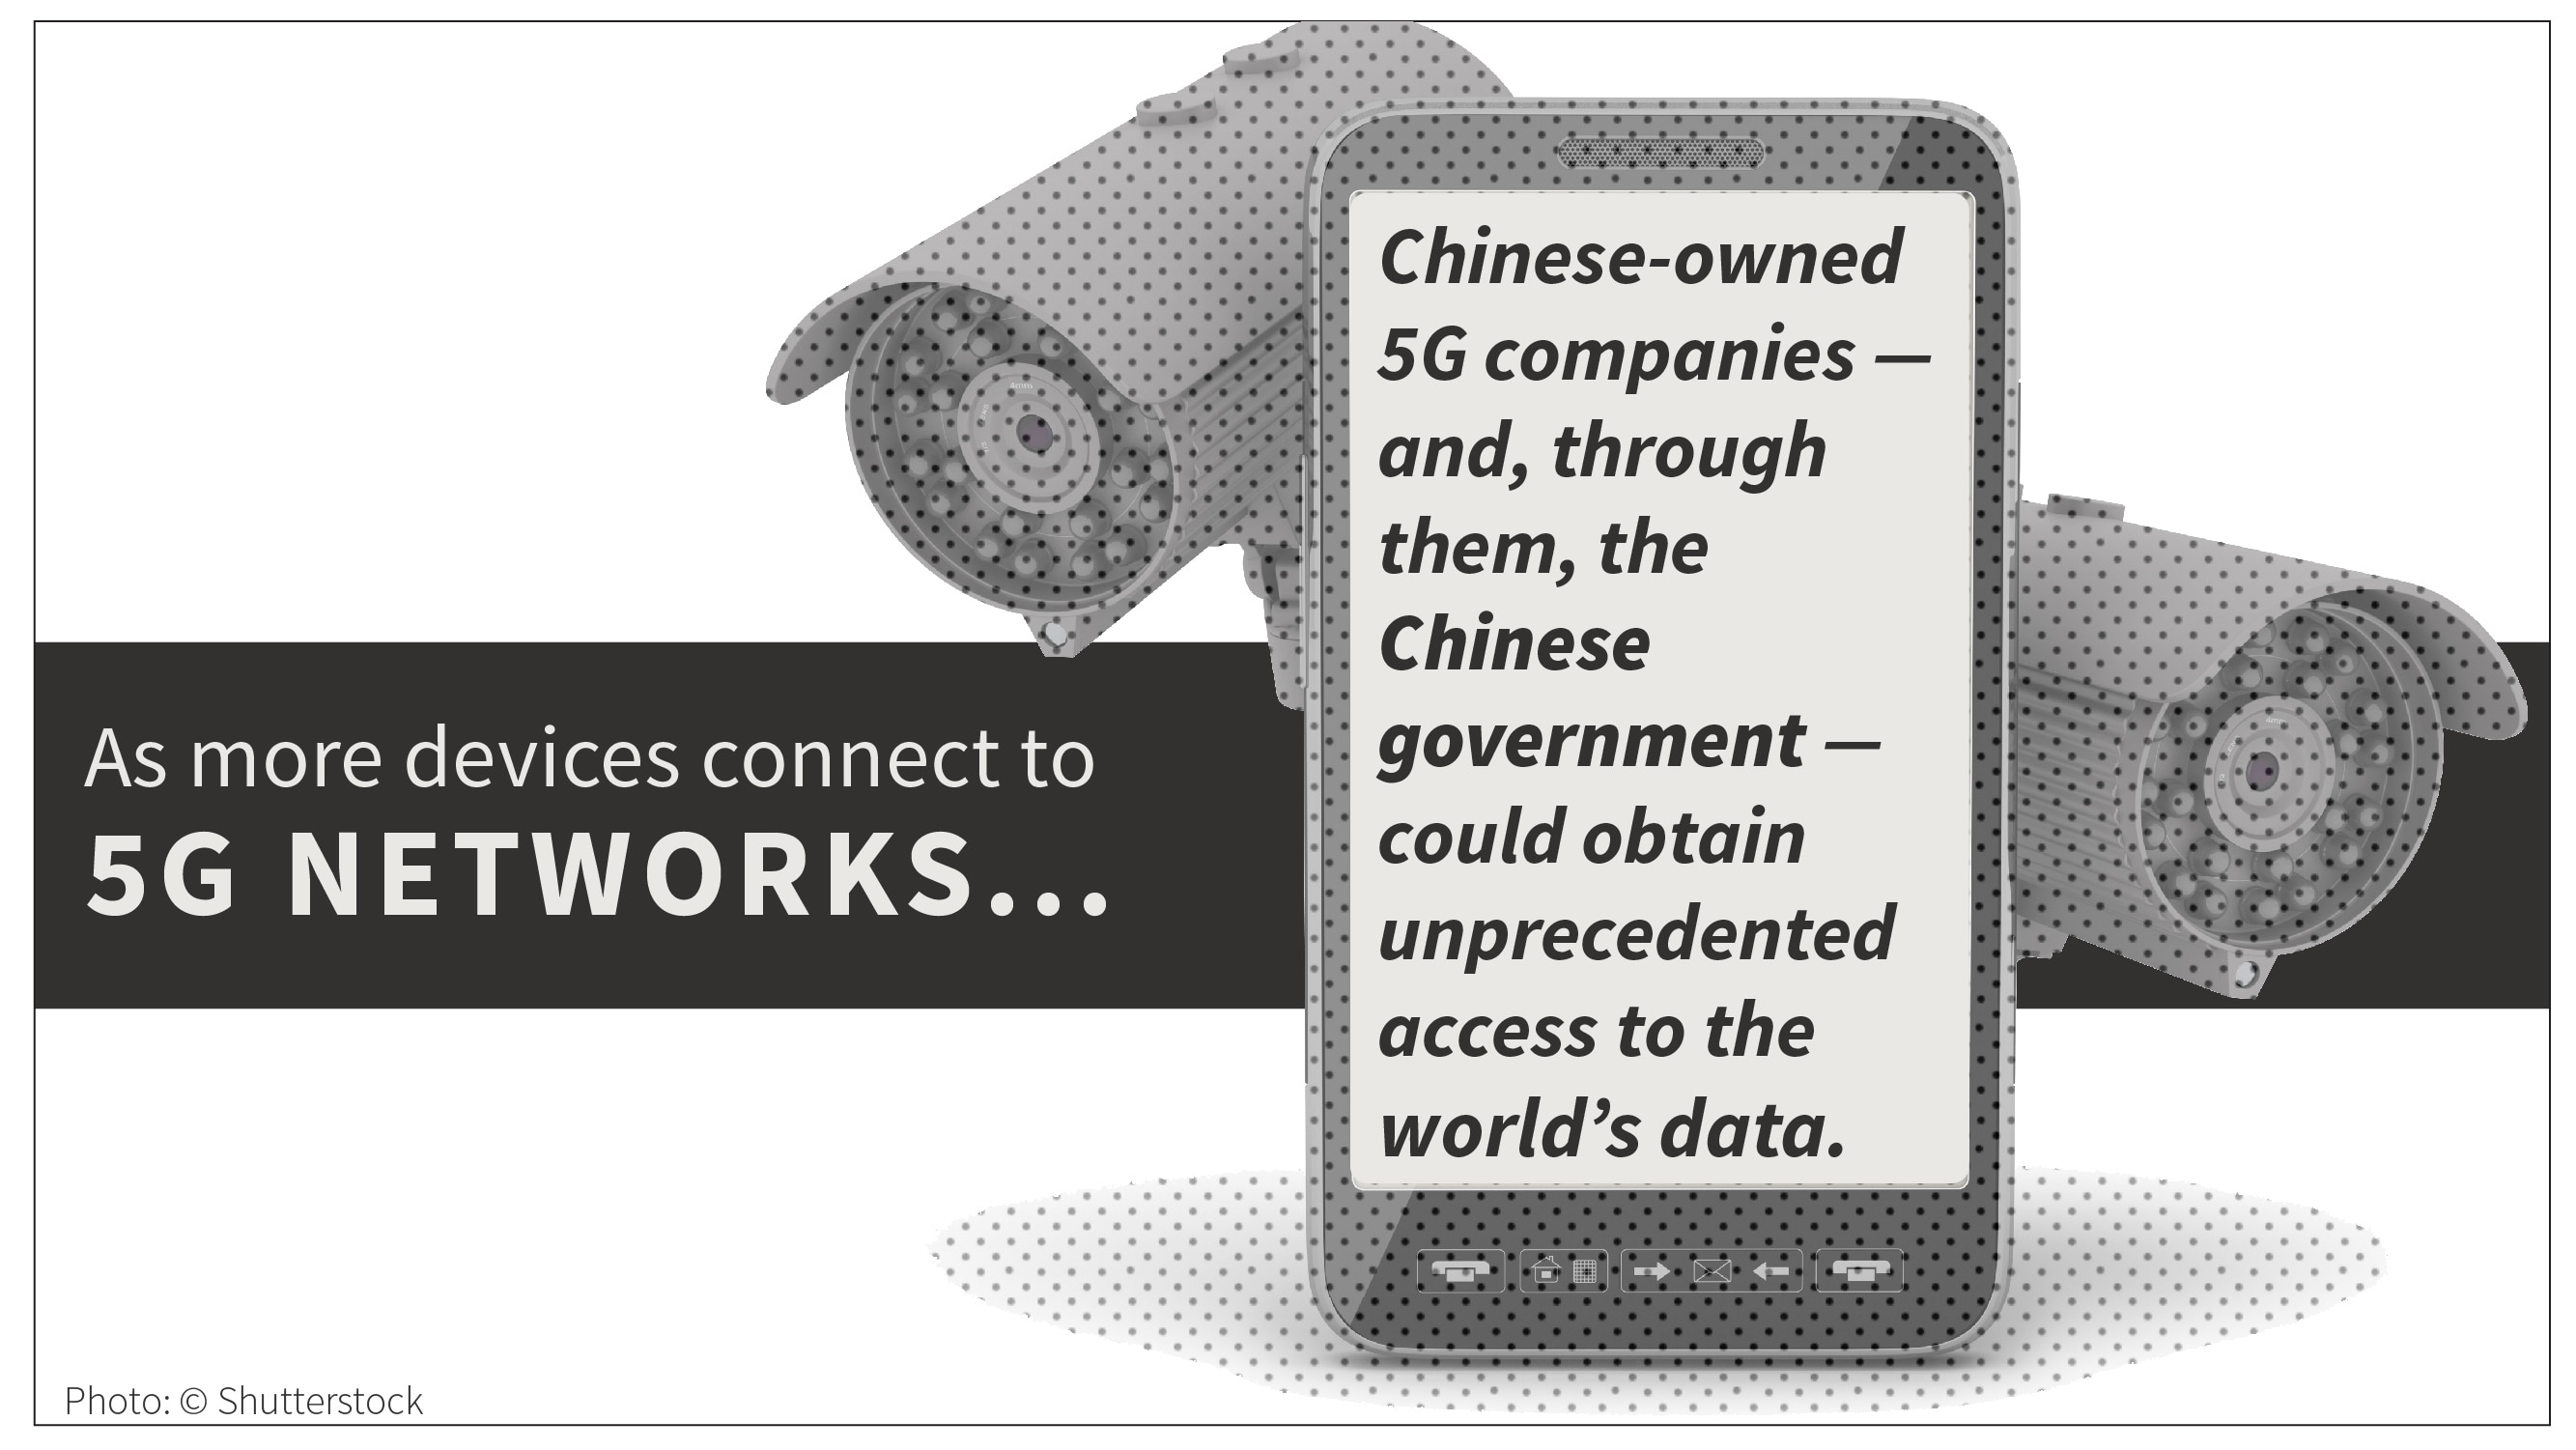 Graphic and text on implications of Chinese ownership of 5G companies (State Dept./S. Gemeny Wilkinson/Photo: © Shutterstock)